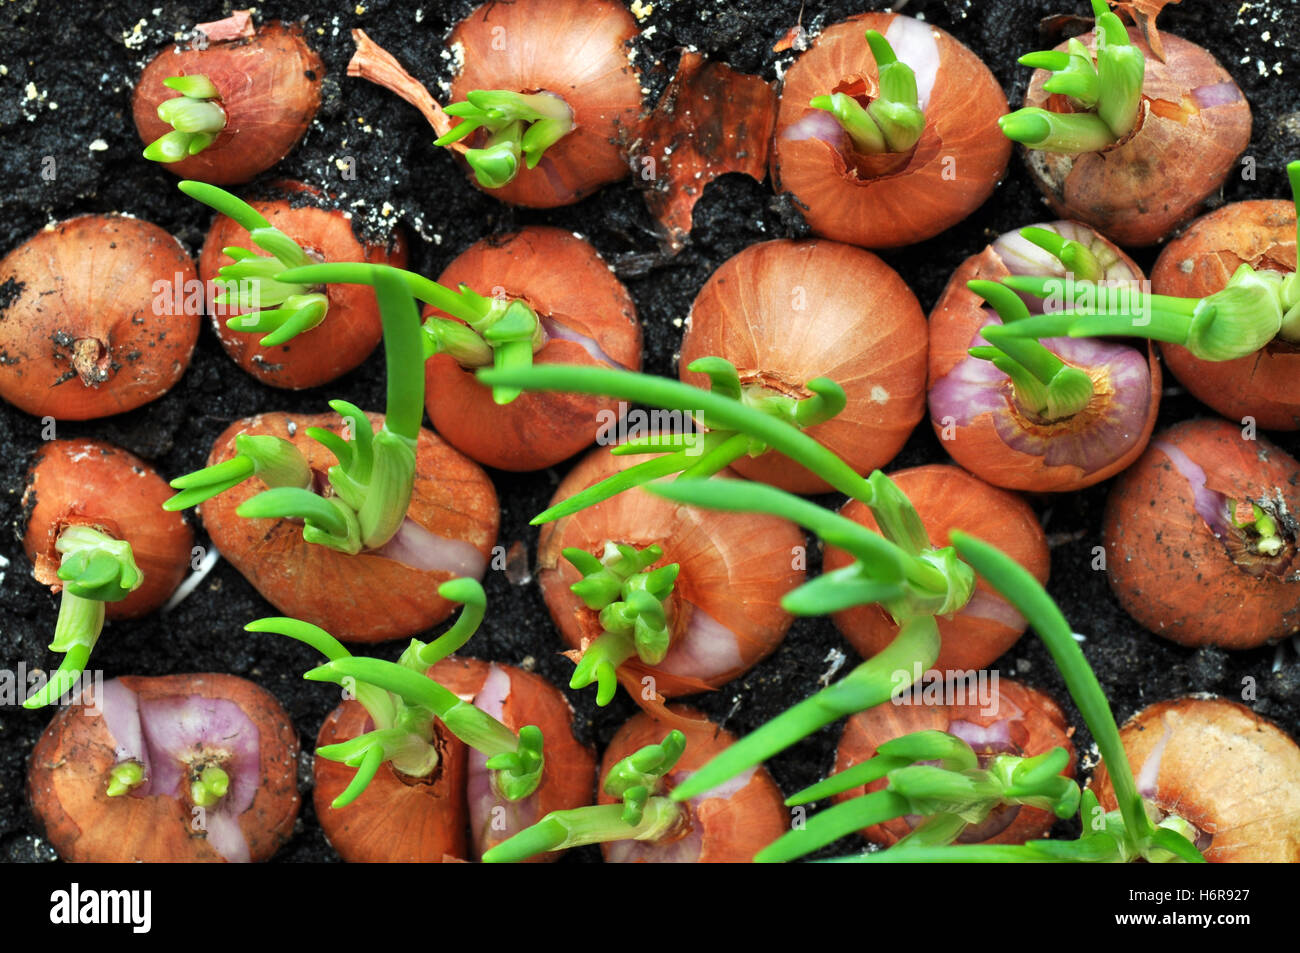 onions with chives - Stock Image